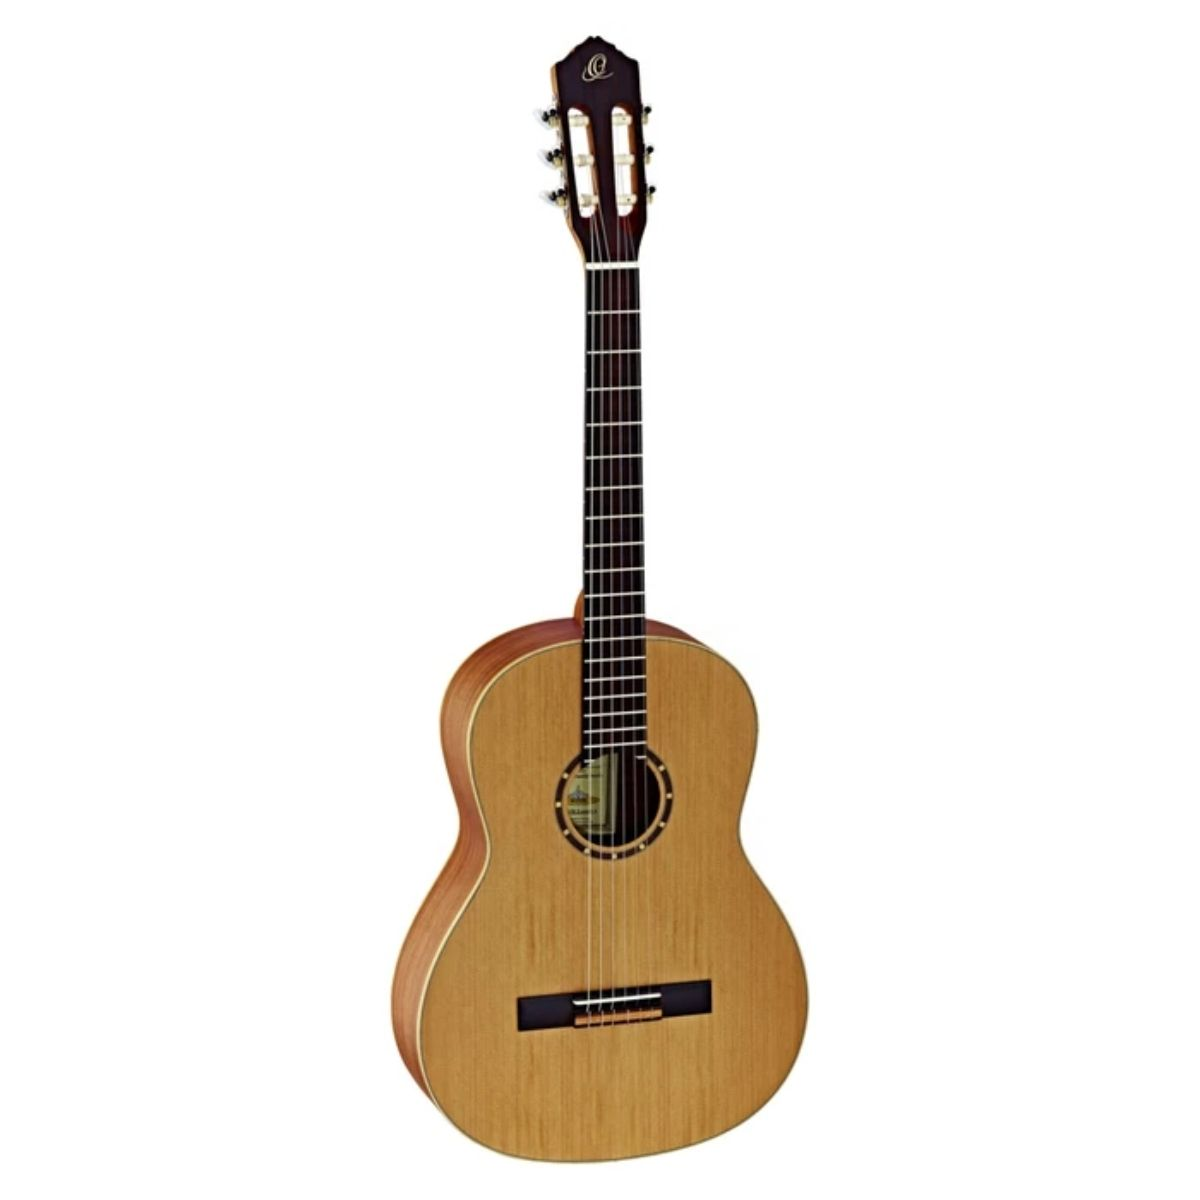 Ortega R122SN Family Series 6 String Classical Guitar - Walnut Fretboard - Natural